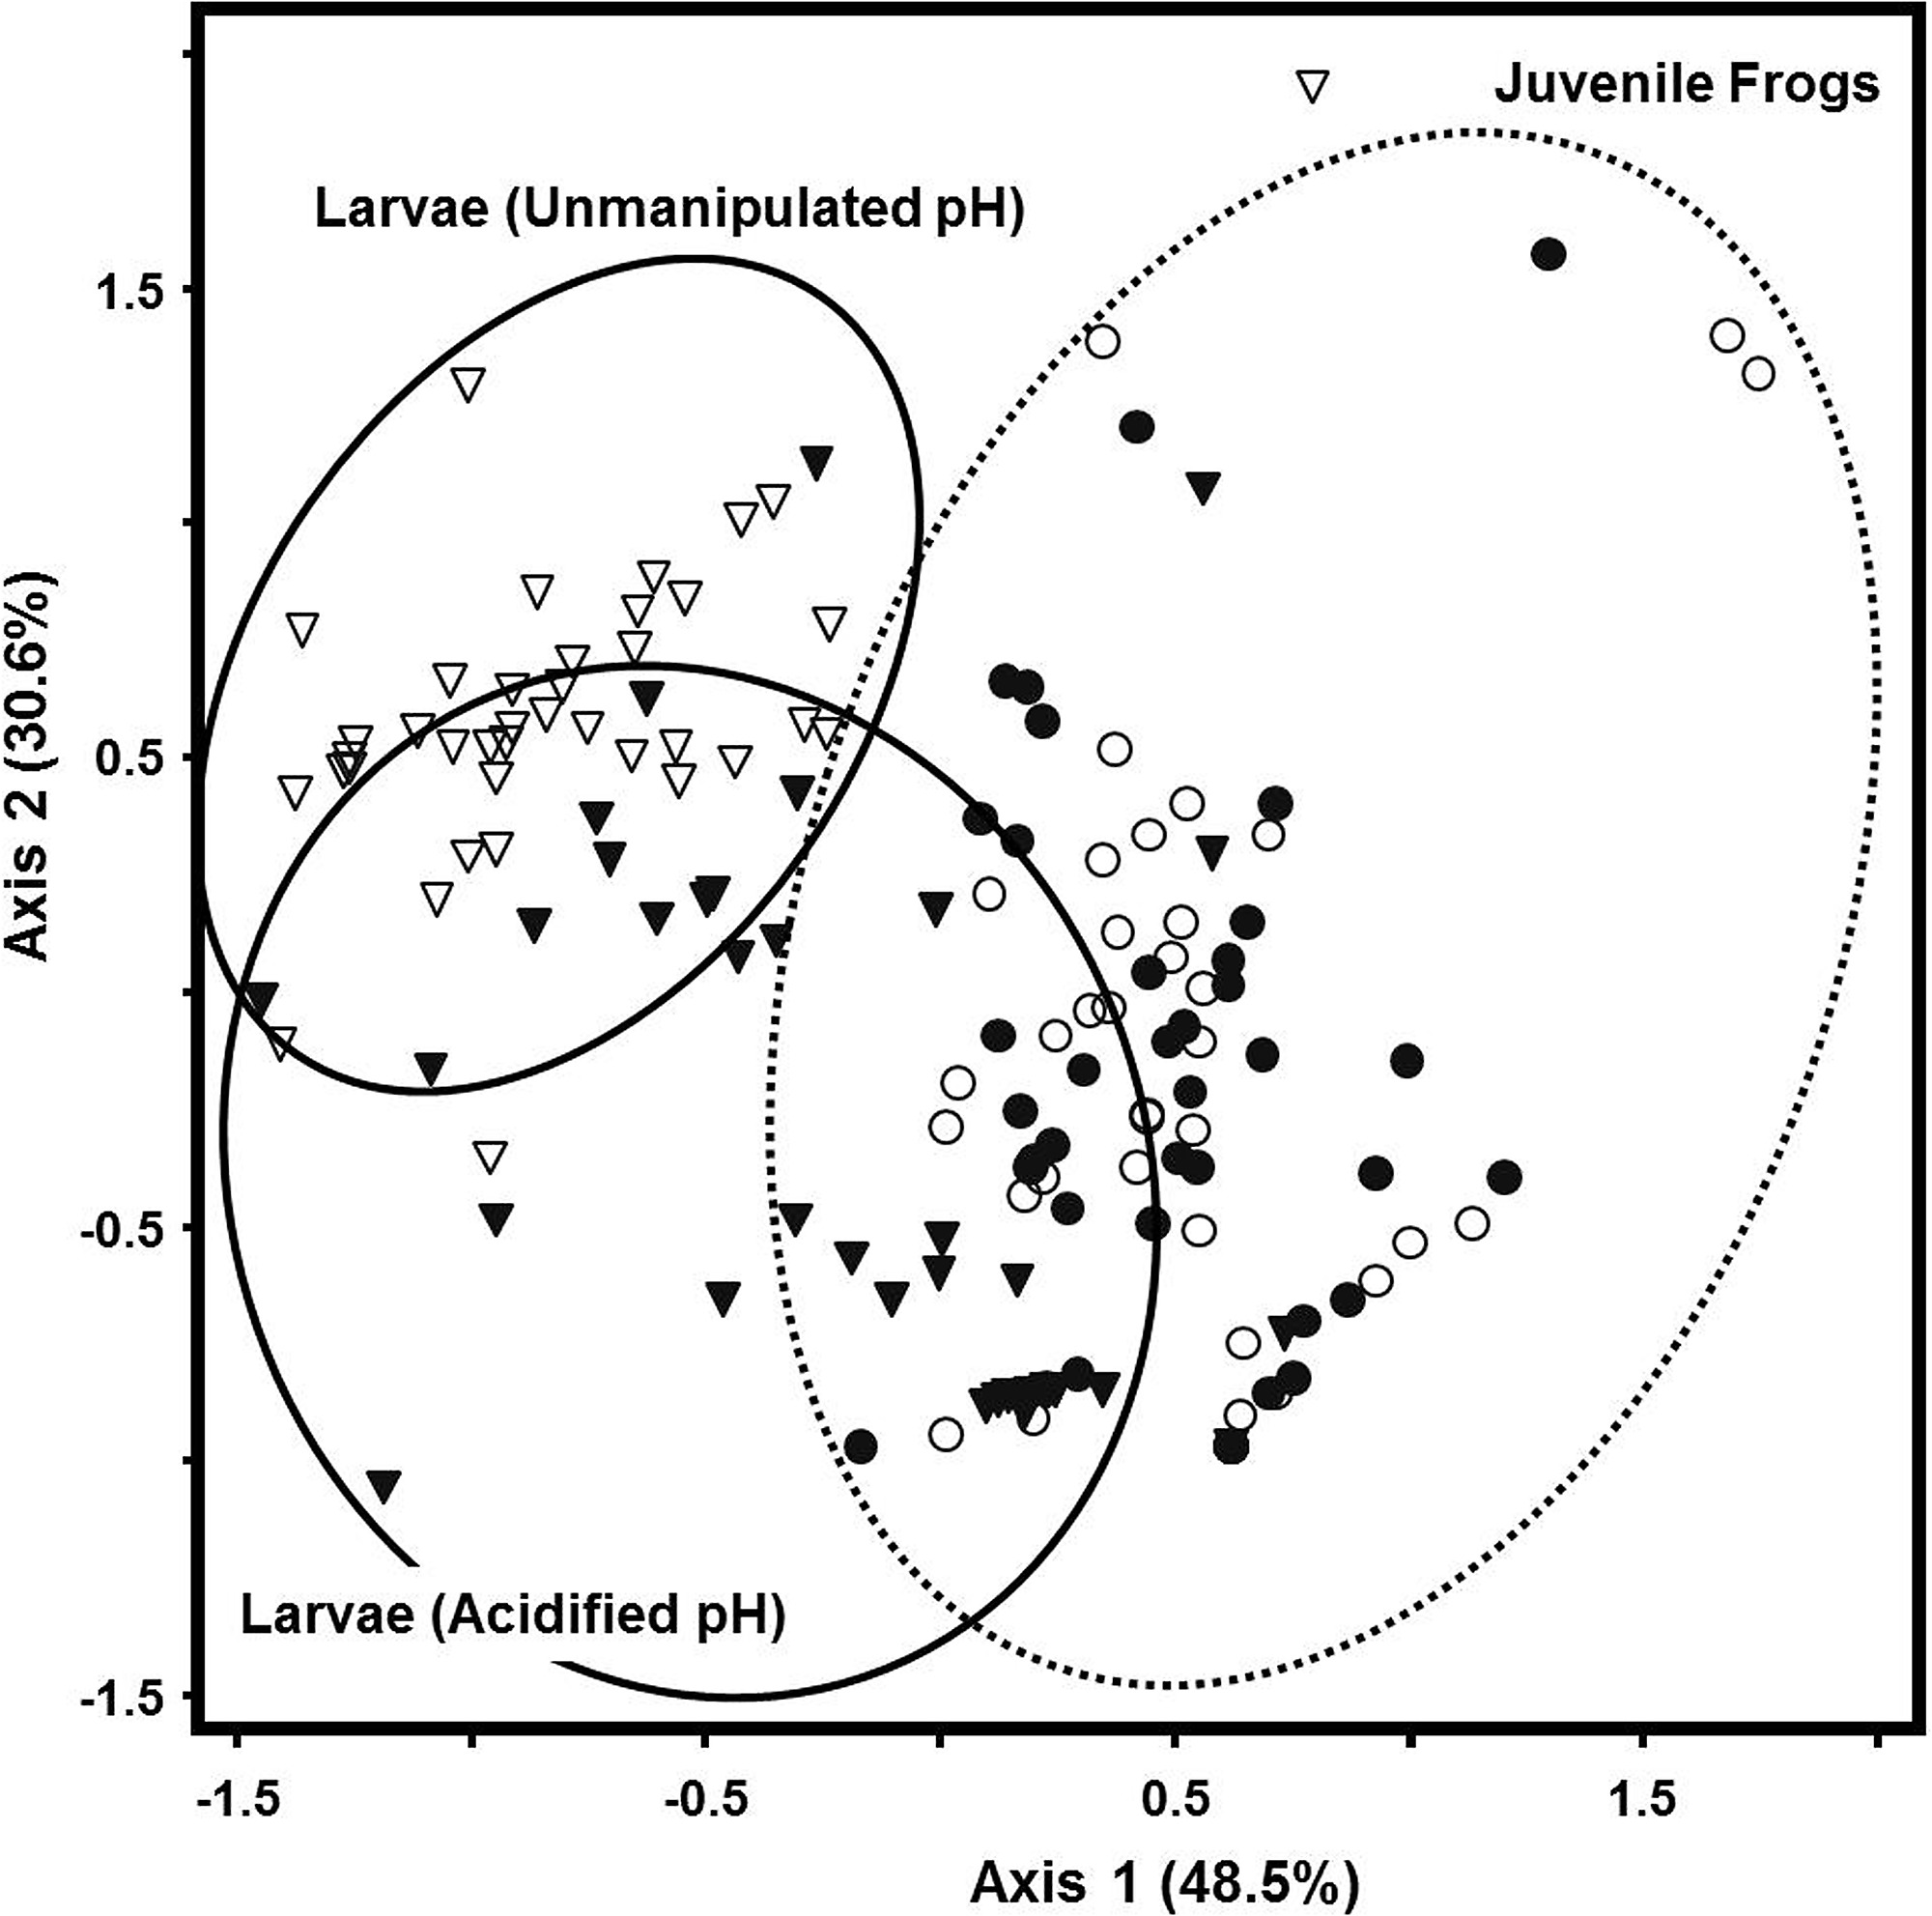 NMDS ordination plot of R  catesbeiana larval and juvenile frog